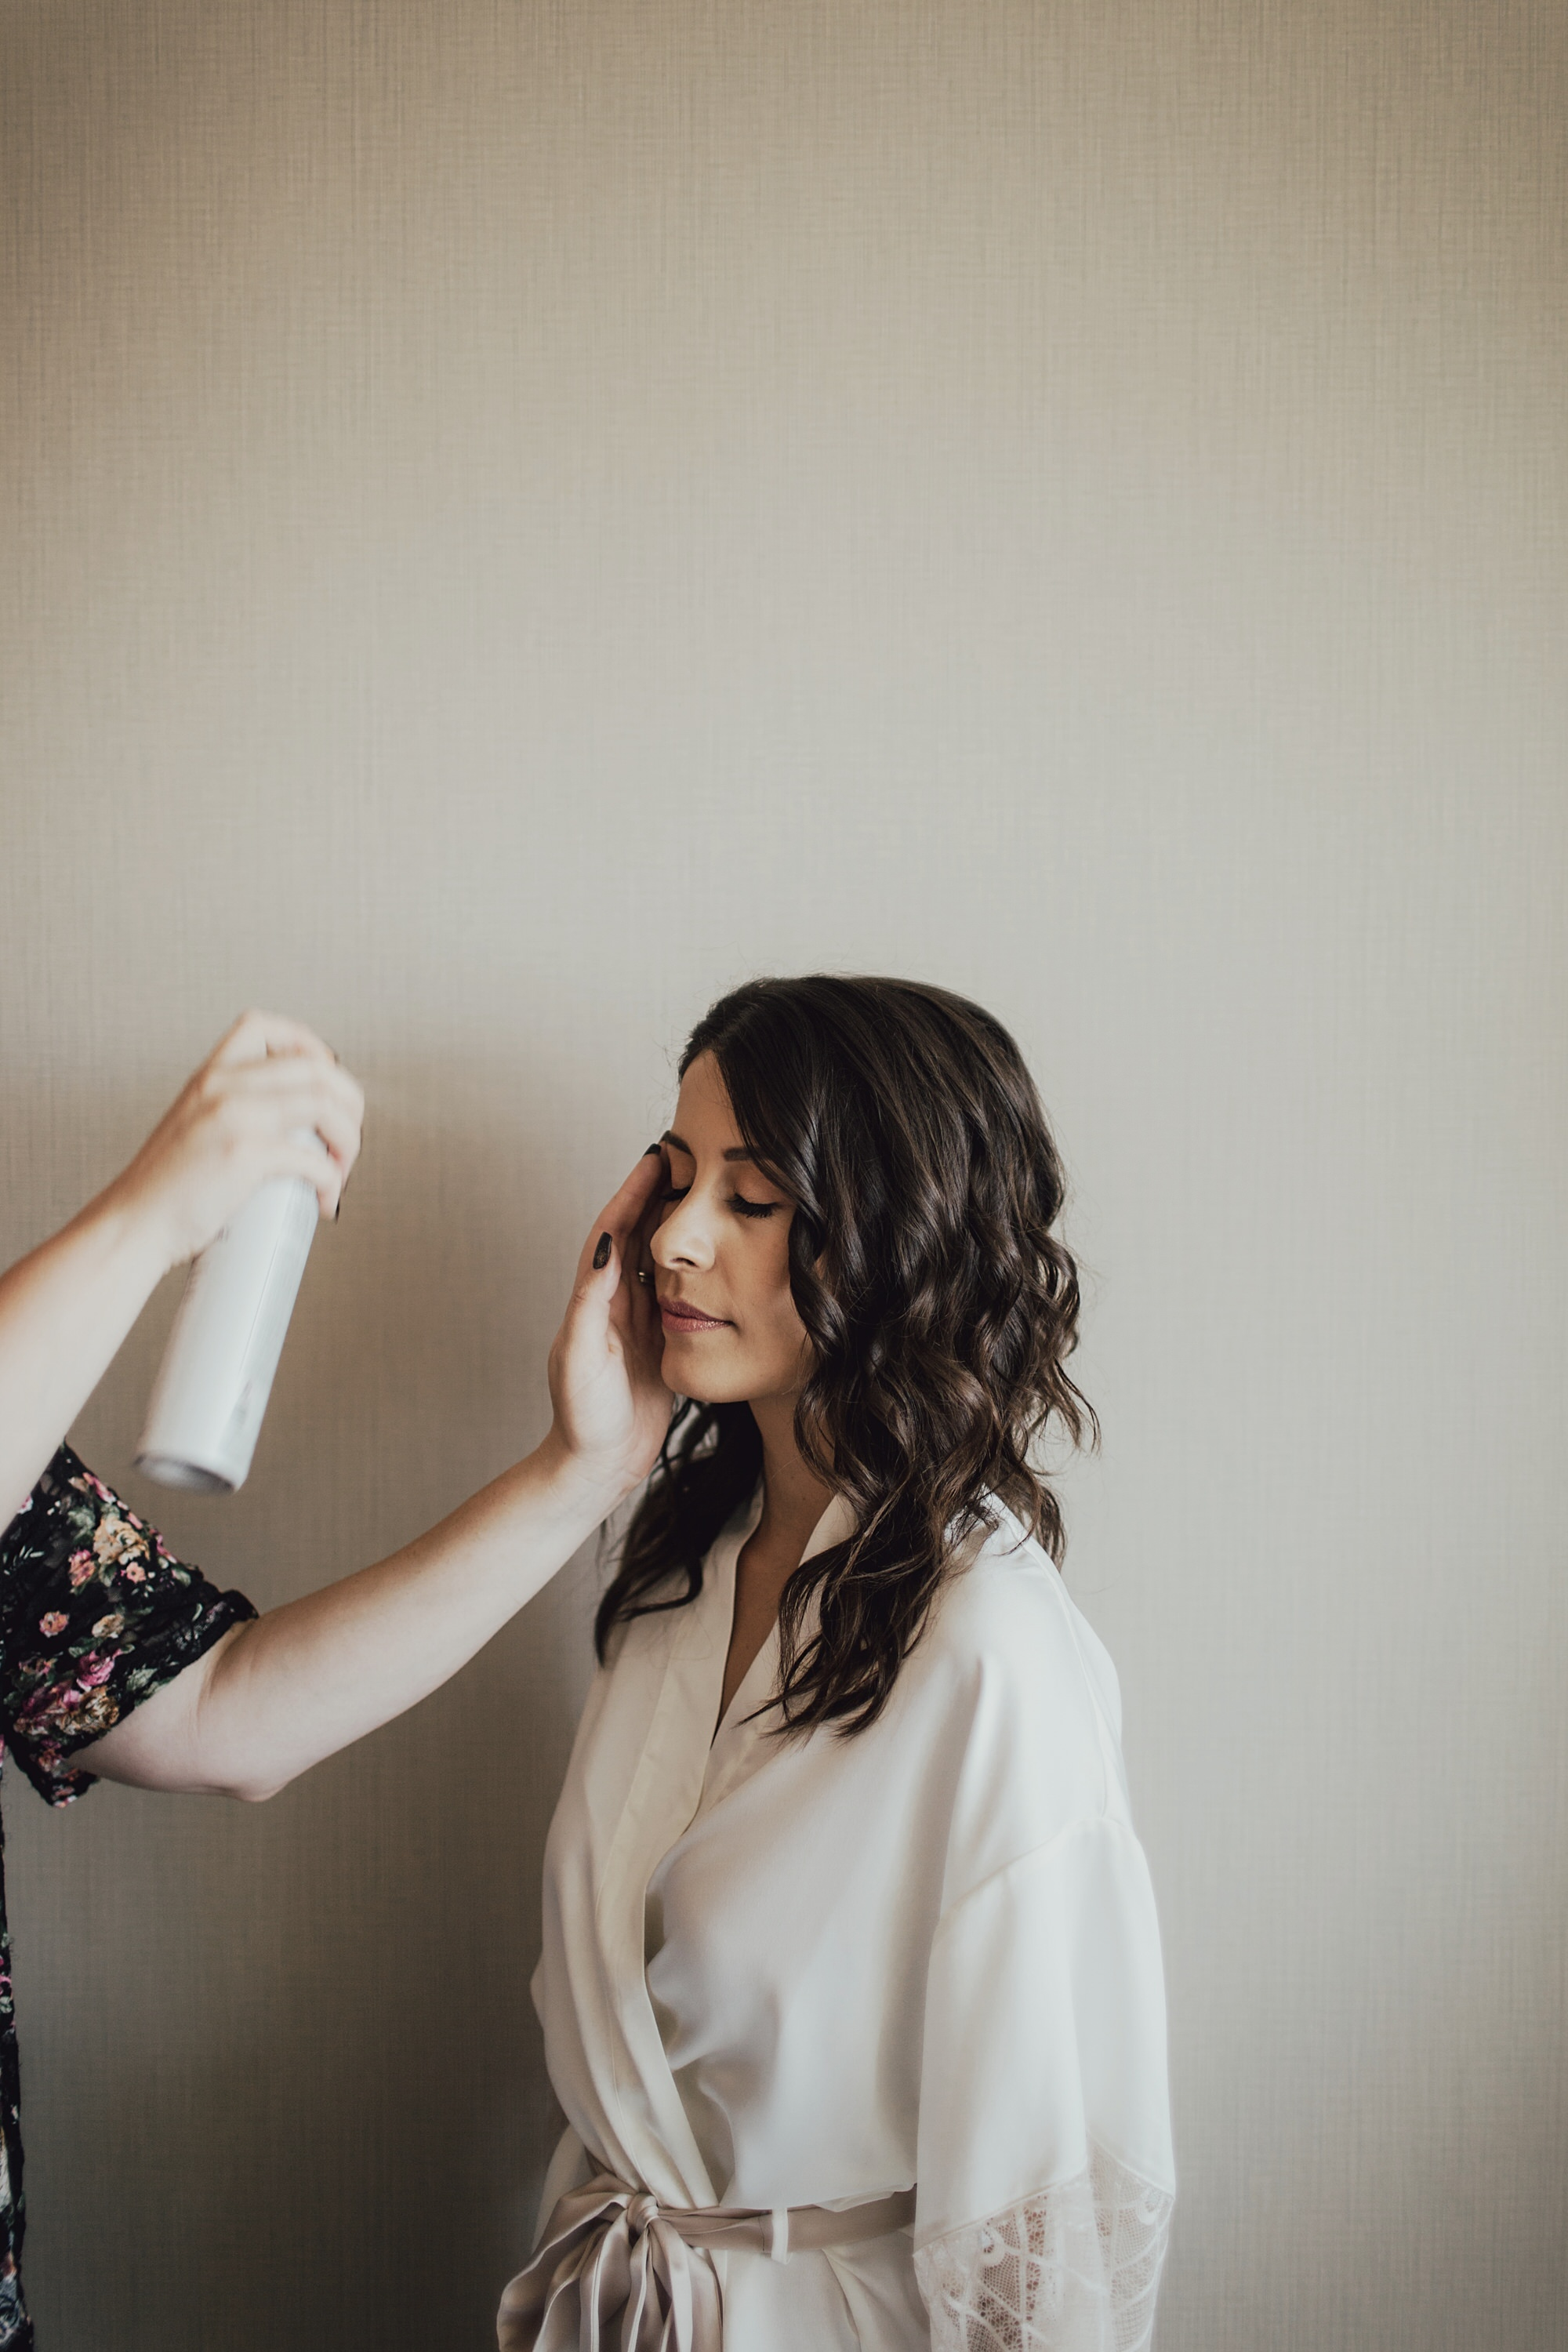 christine getting her hair done on her wedding day